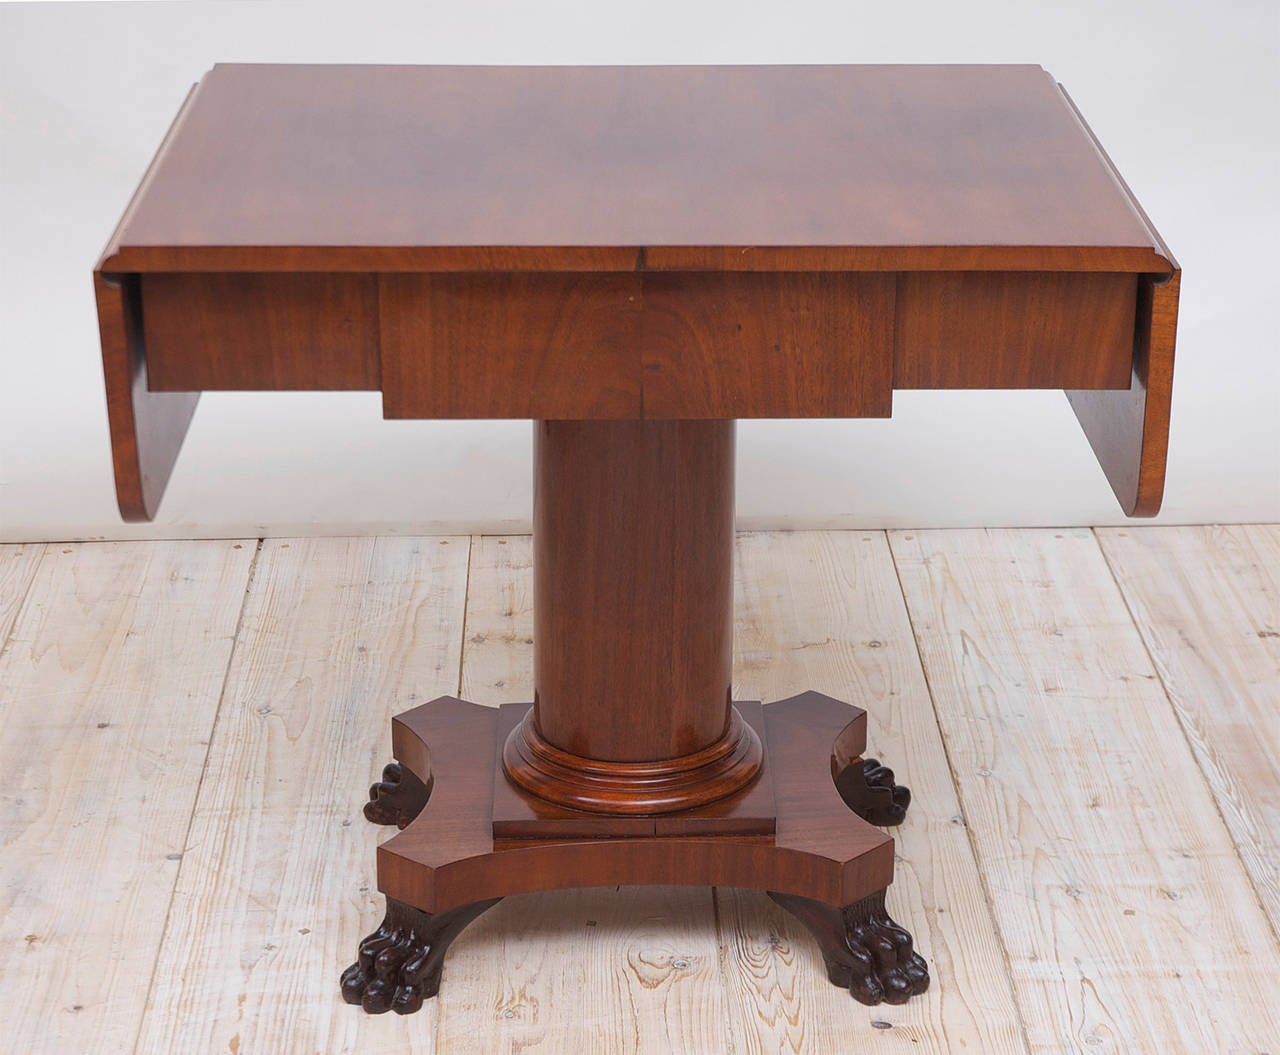 Biedermeier Writing Desk or Sofa Table in Mahogany, Sweden, circa 1840 For Sale 3